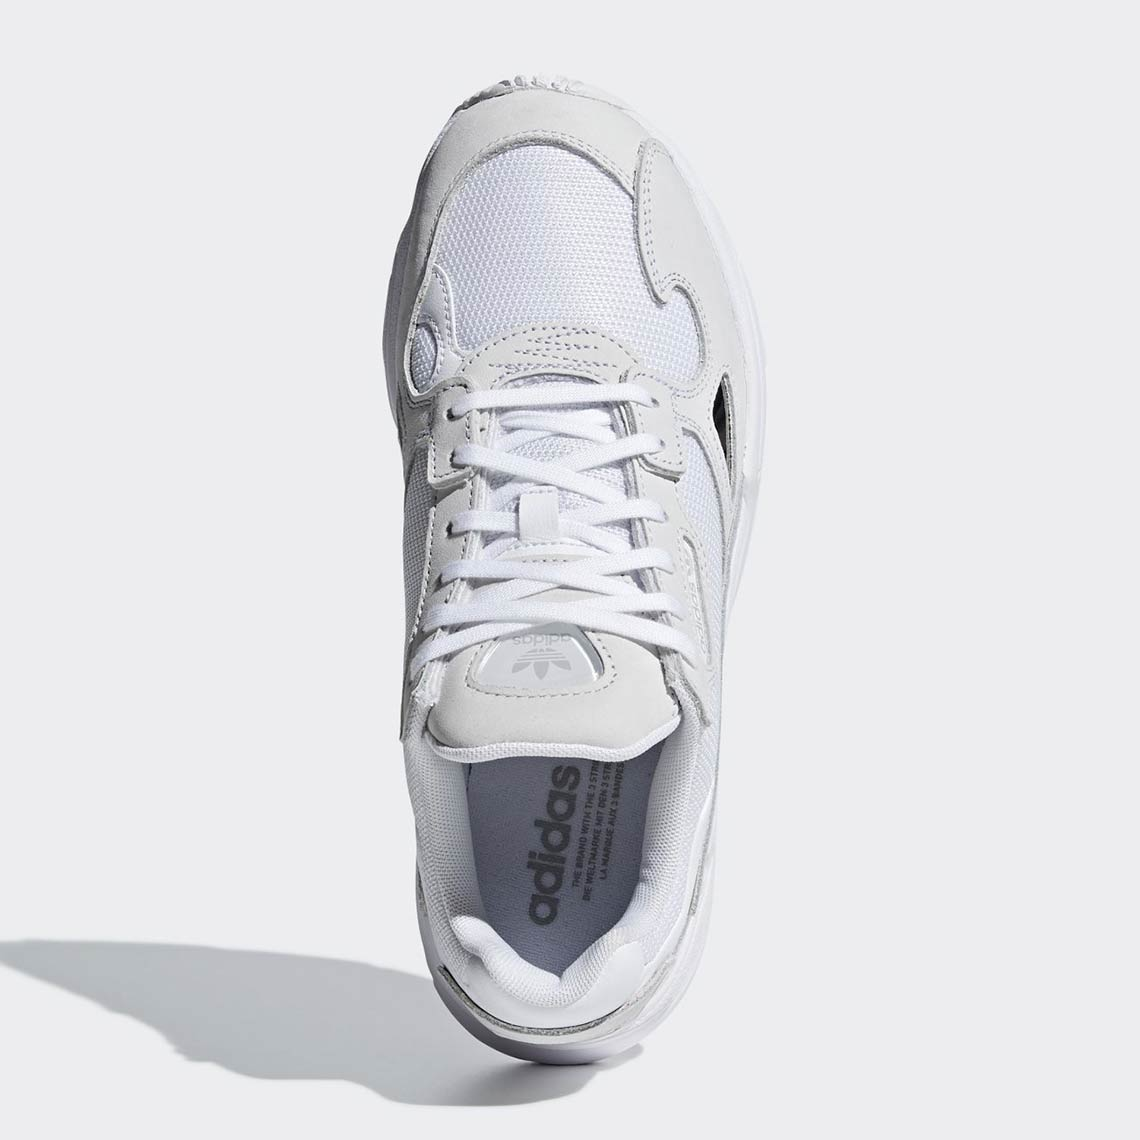 new concept 5e56f f967d adidas Falcon Triple White B28128 Release Info   SneakerNews.com